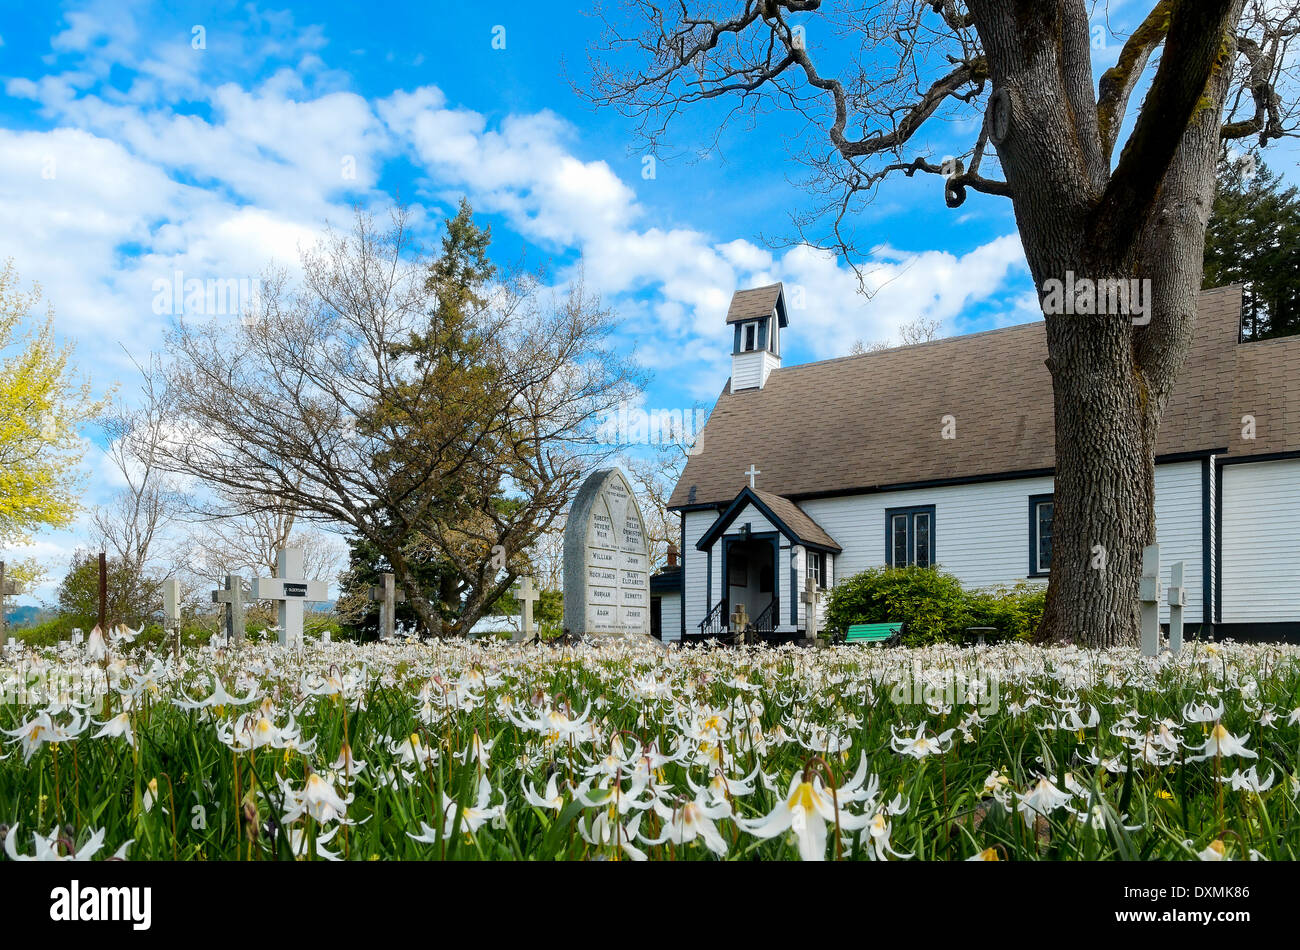 Native white fawn lilies bloom in Spring, Saint Mary the Virgin Anglican Church, Metchosin, British Columbia, Canada - Stock Image